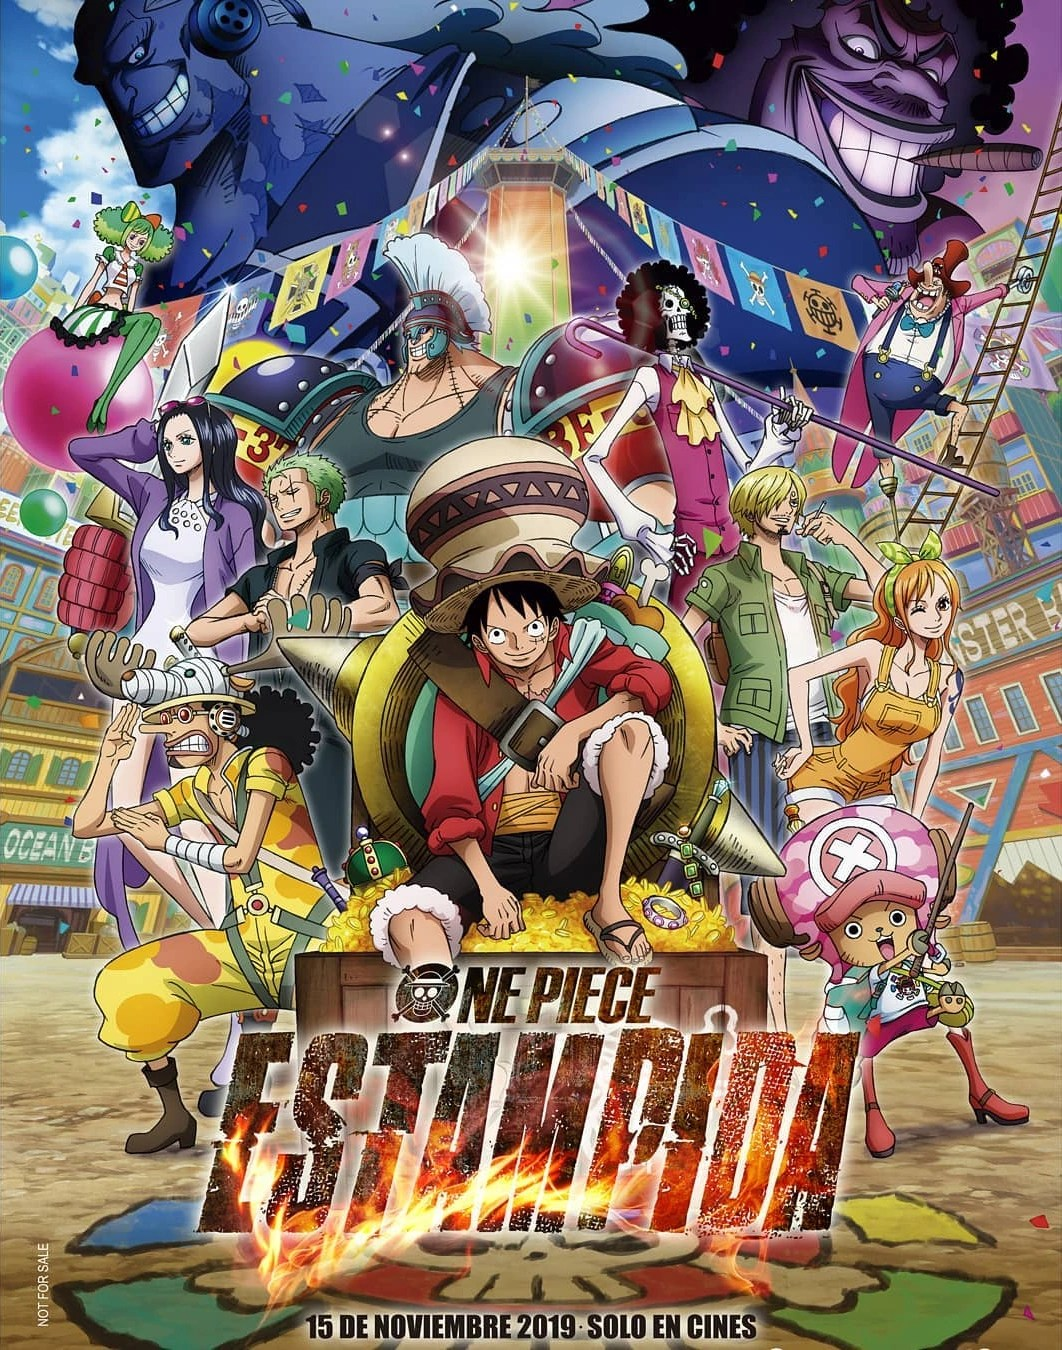 In addition to doing impressions, mimicry, or character voices, a voice actor must also possess acting skills. One Piece Stampede One Piece Wiki Fandom